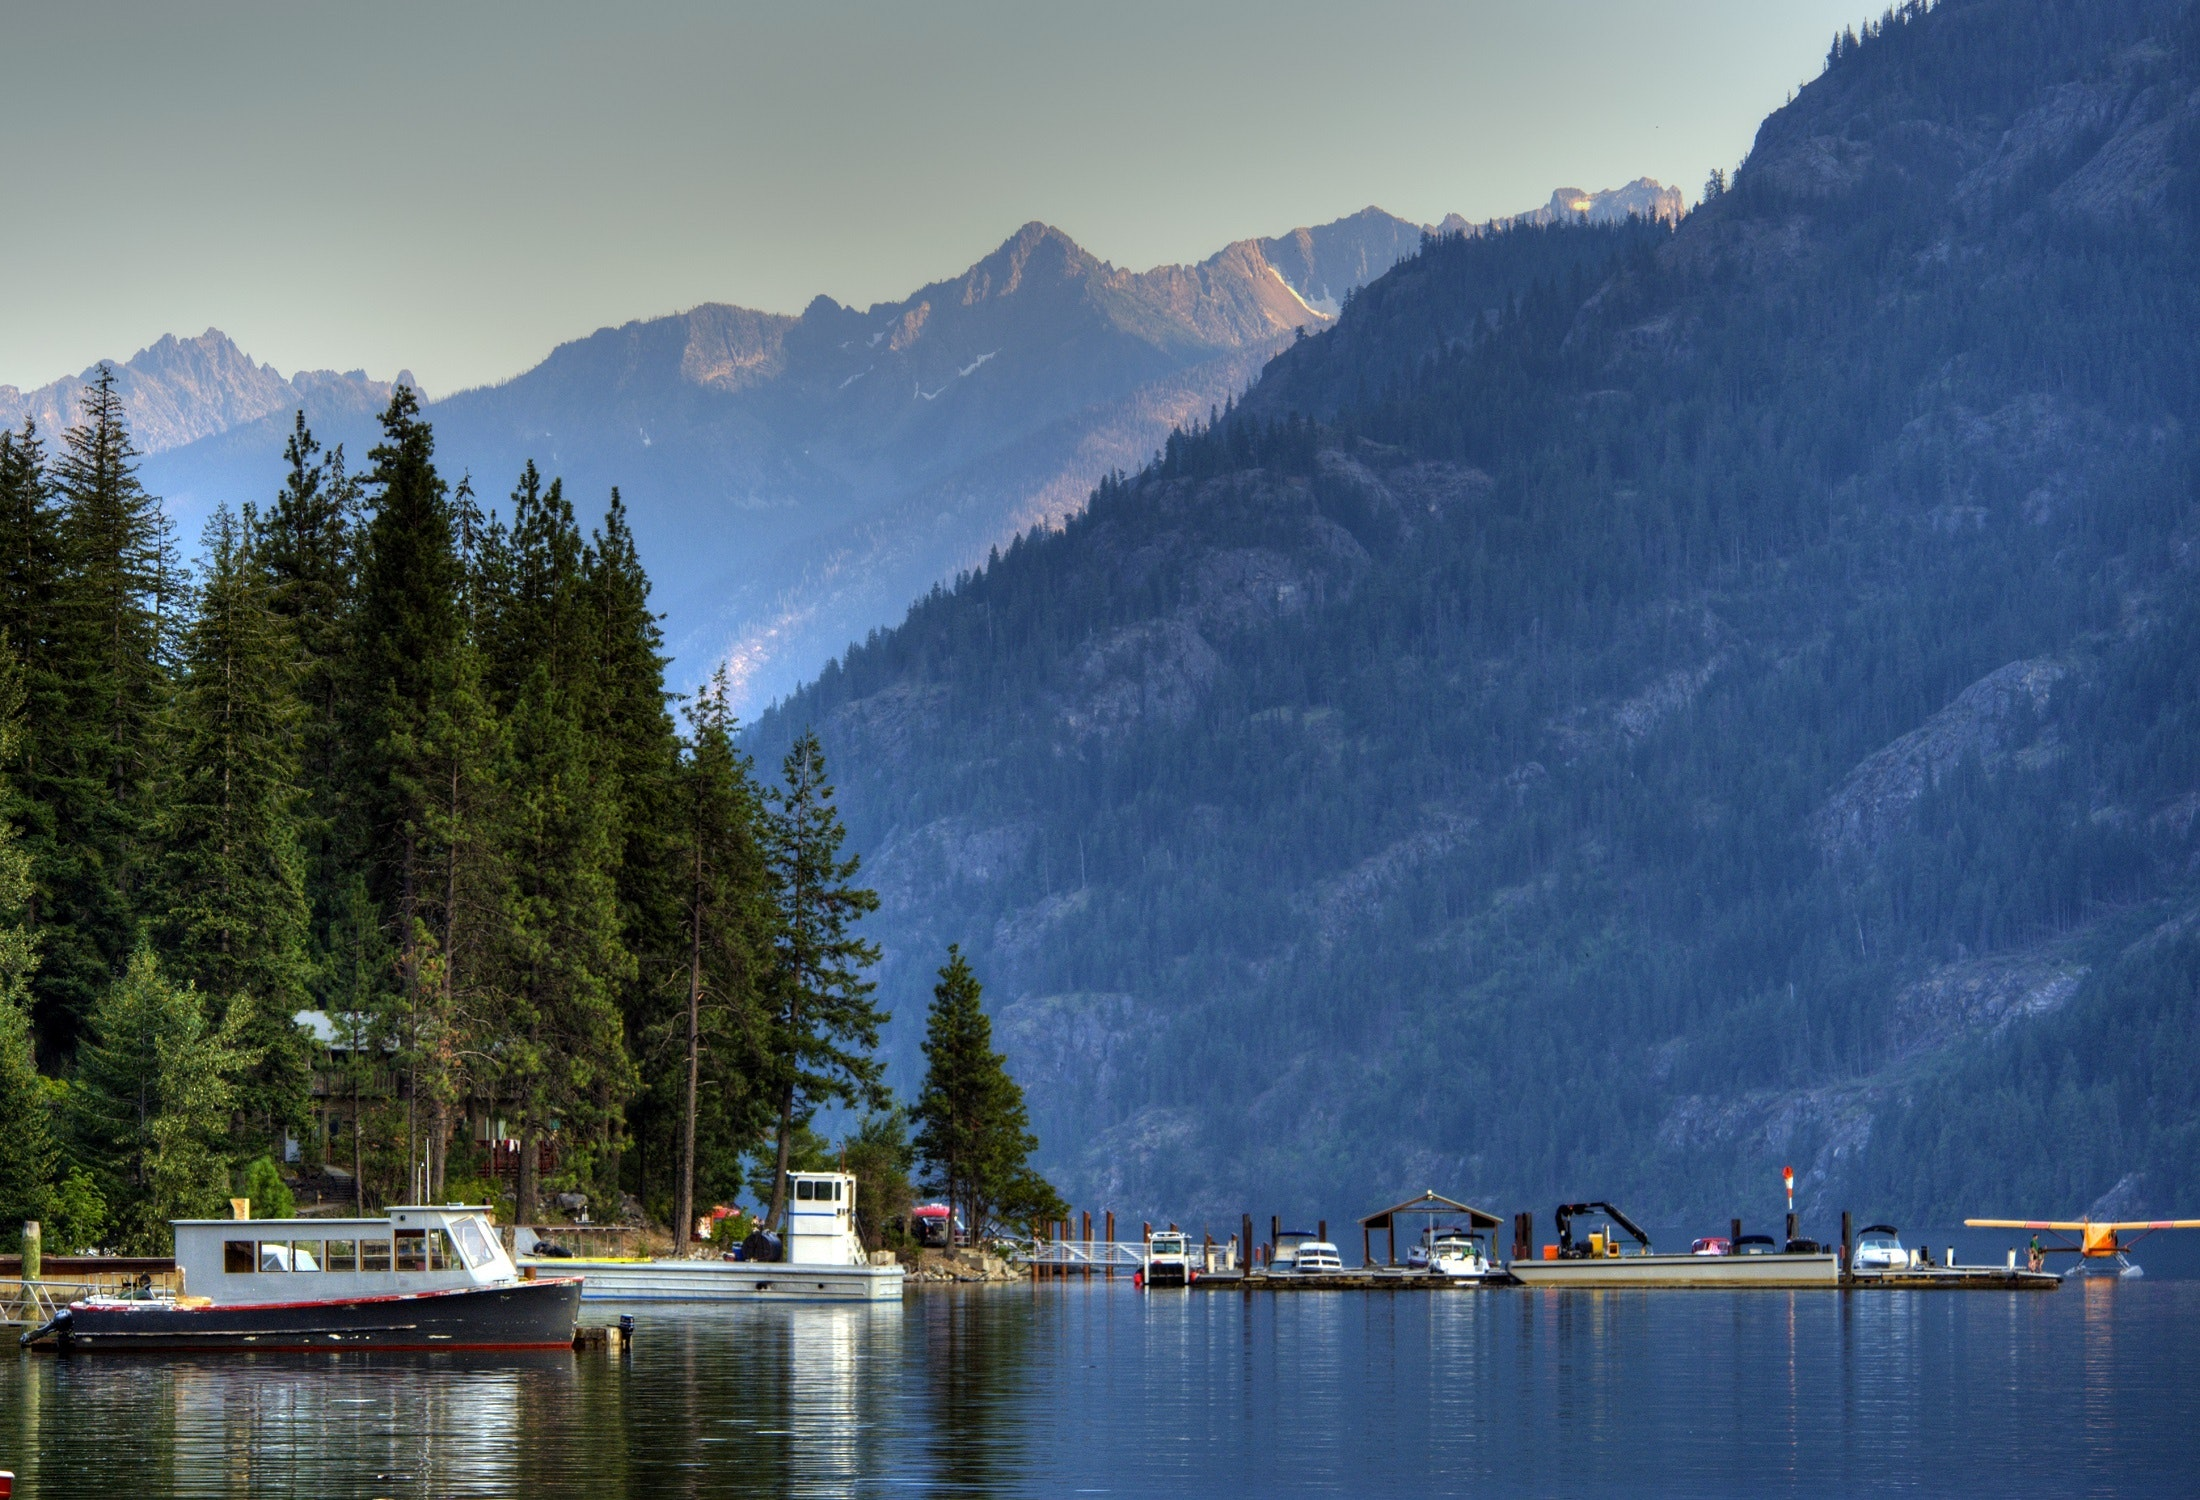 Body of Water Near Mountain Covered by Trees With Grey Clouds Above during Daytime, Boats, Dock, Forest, Lake, HQ Photo